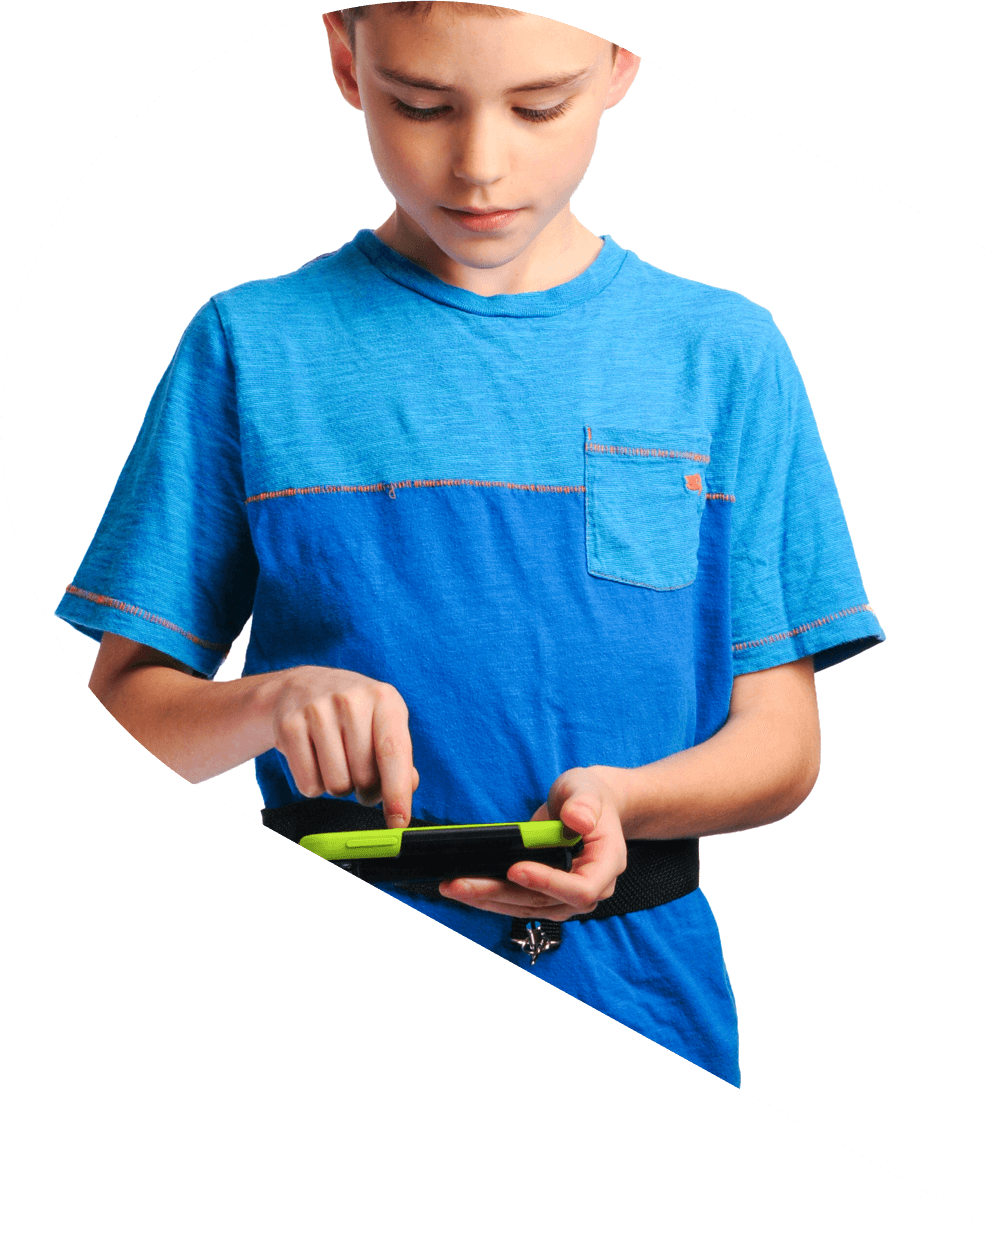 Image of a child trying out a smaller sized A A C device